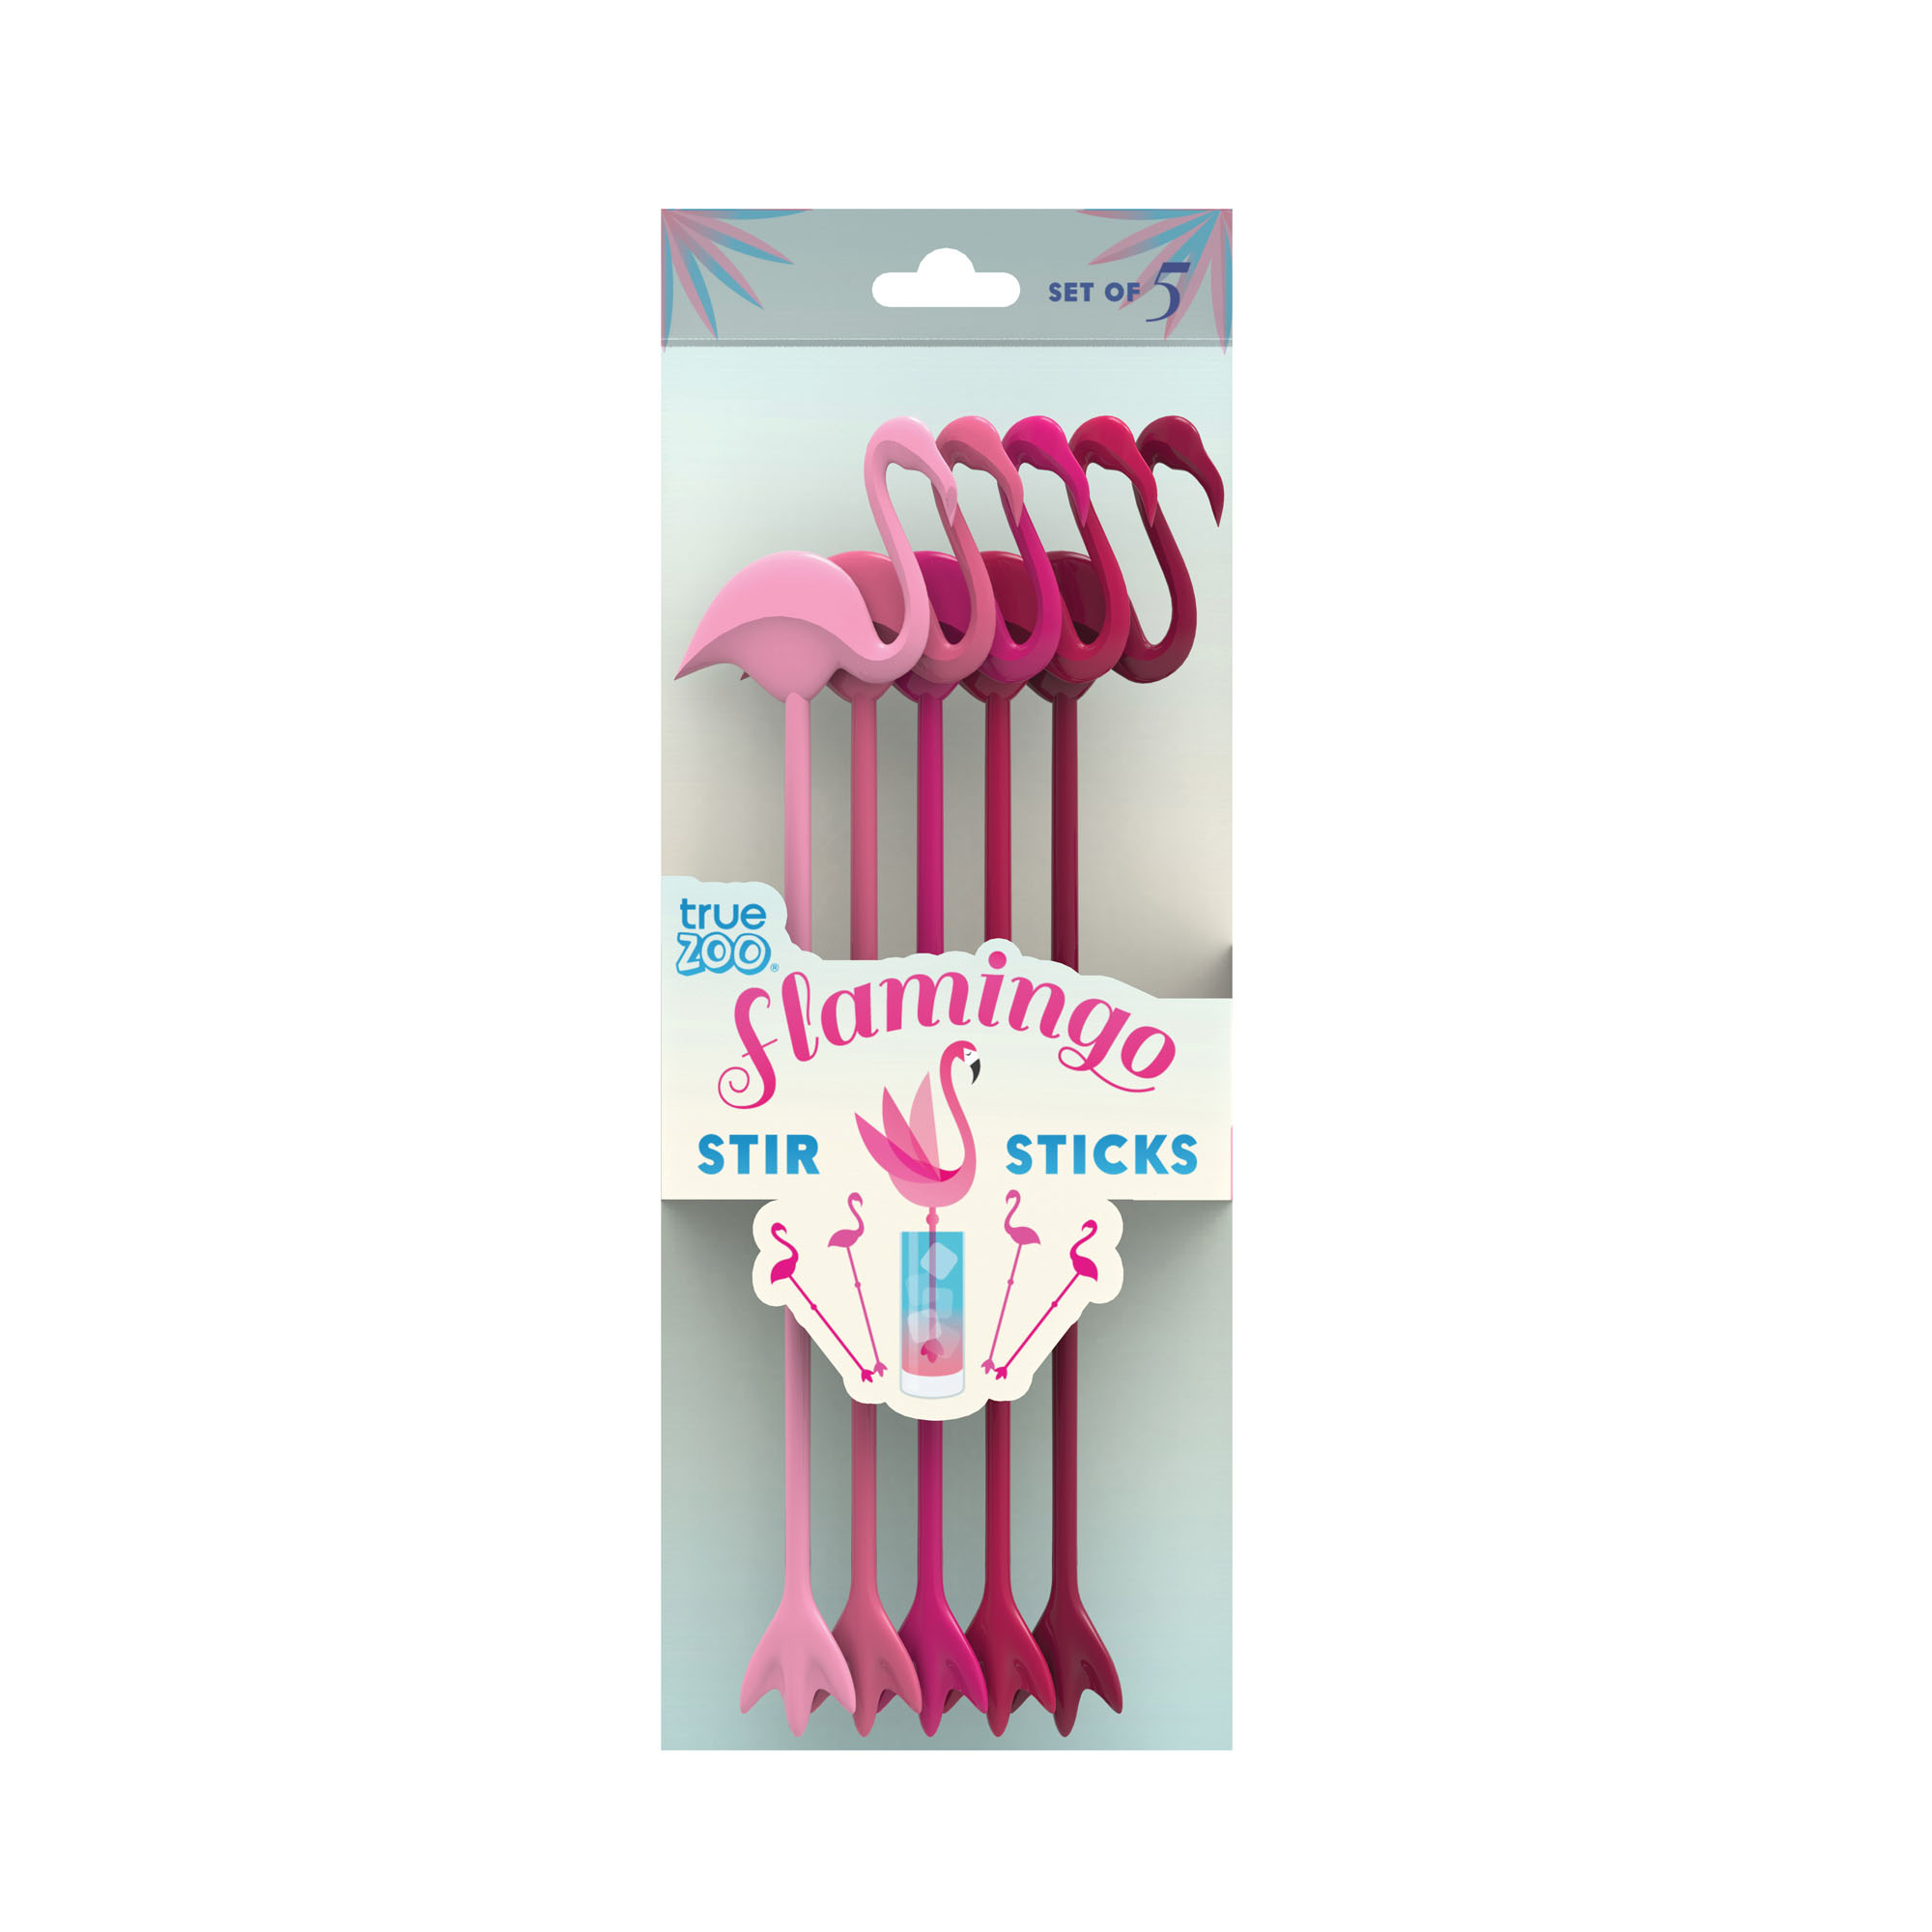 Flamingo stir sticks